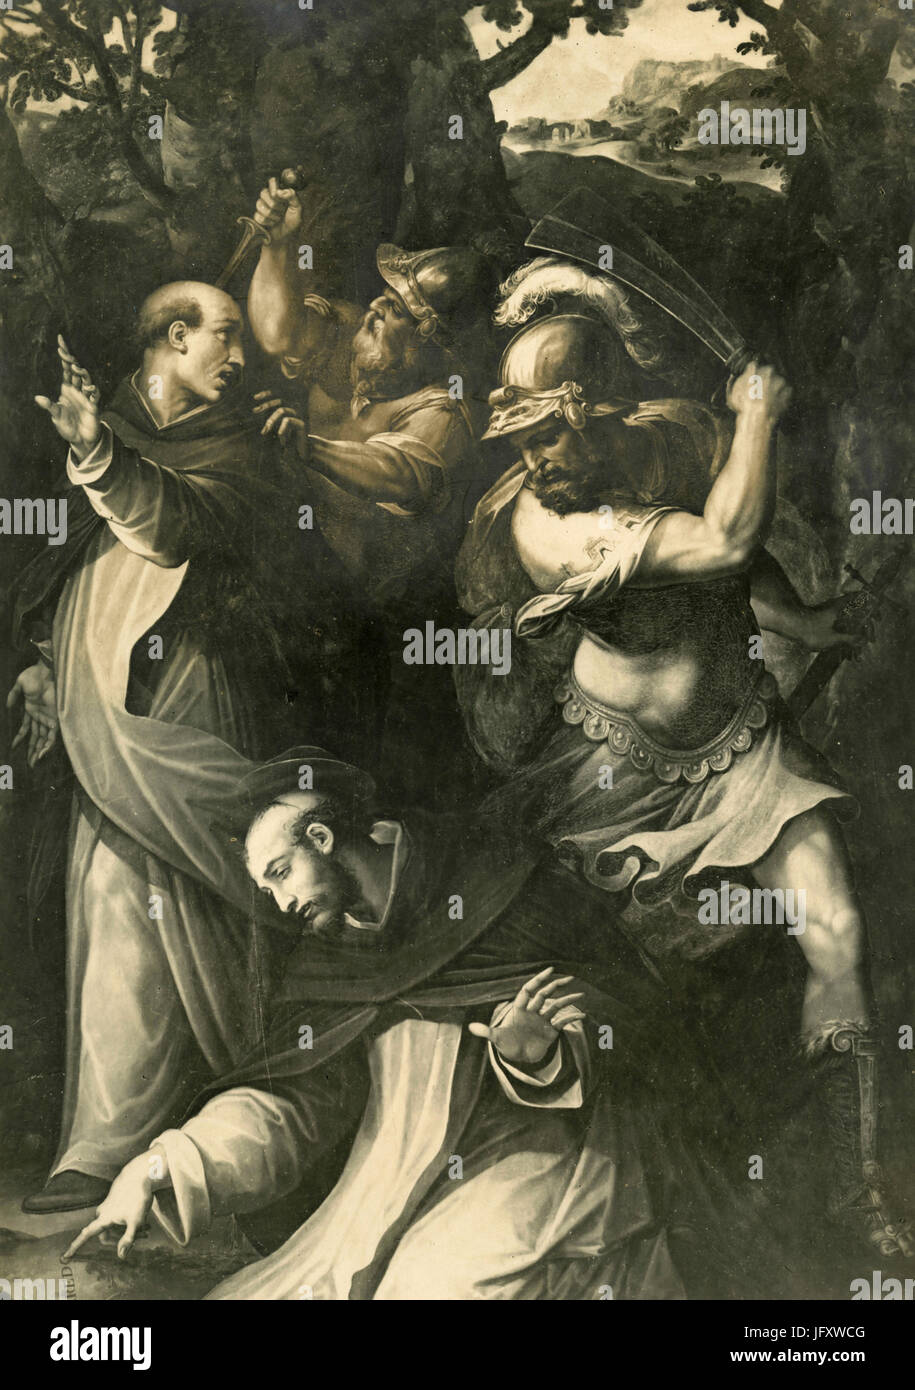 The Murder of St. Peter Martyr, painting by Giorgio Vasari - Stock Image